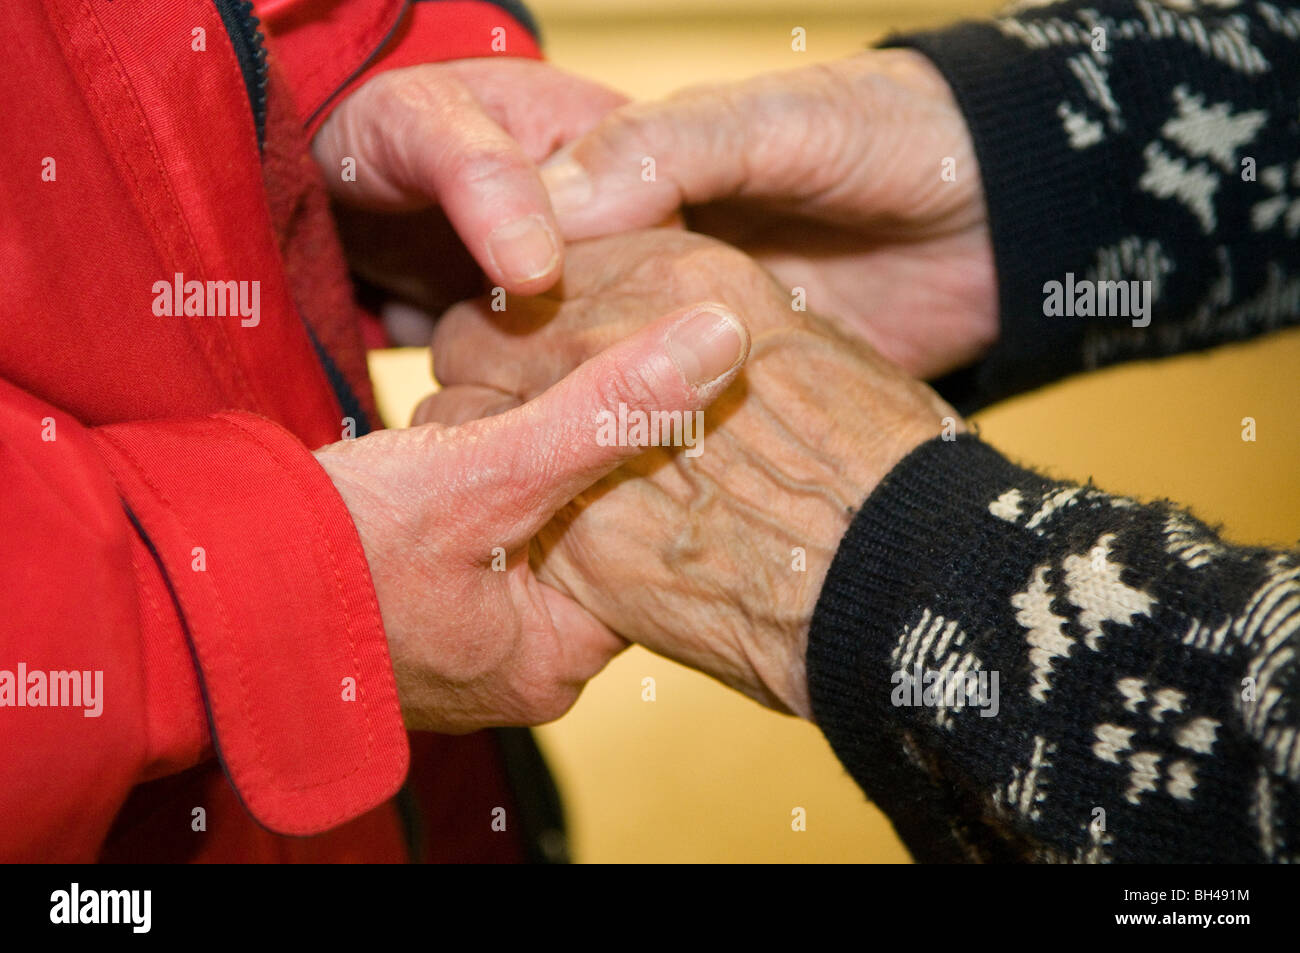 Holding hands in an old people's home - Stock Image